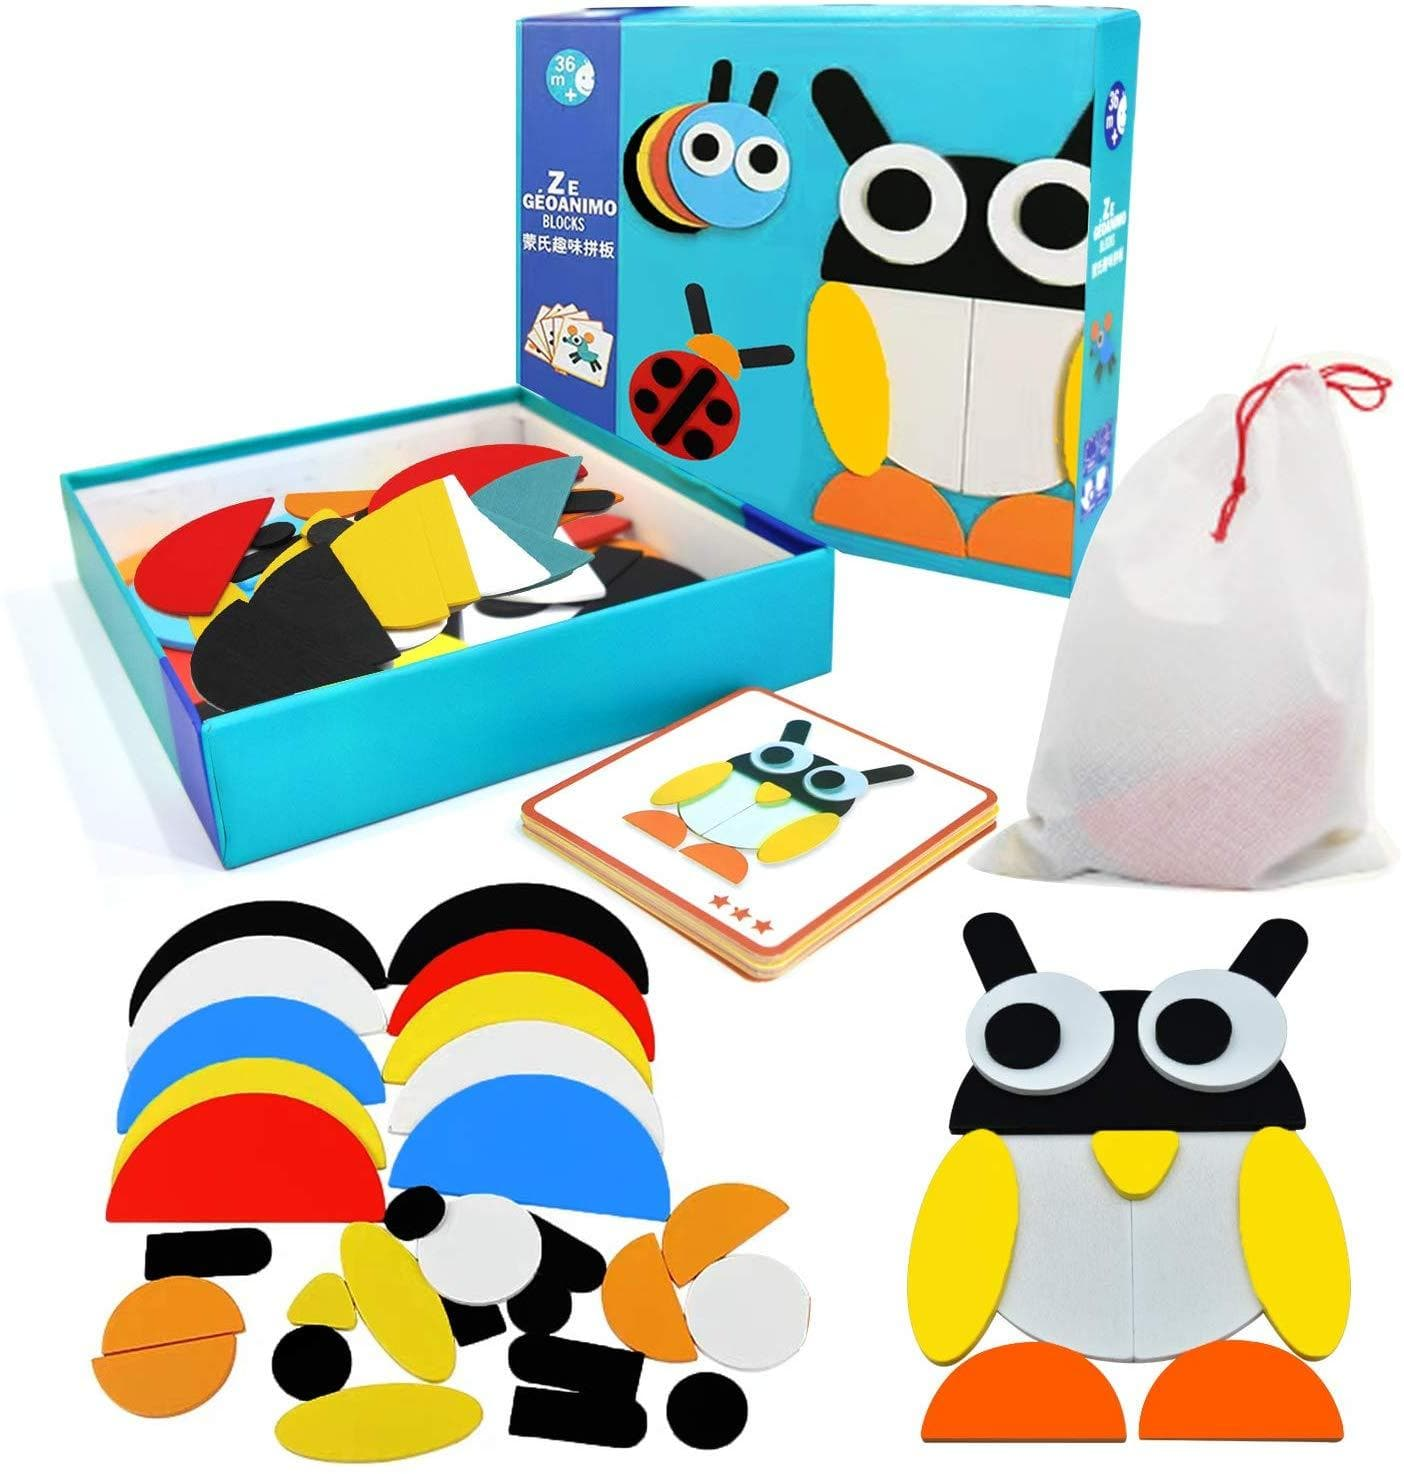 WisToyz Wooden Pattern Blocks, Animals Jigsaw Geometric Shape Puzzle, Educational Toys Gift